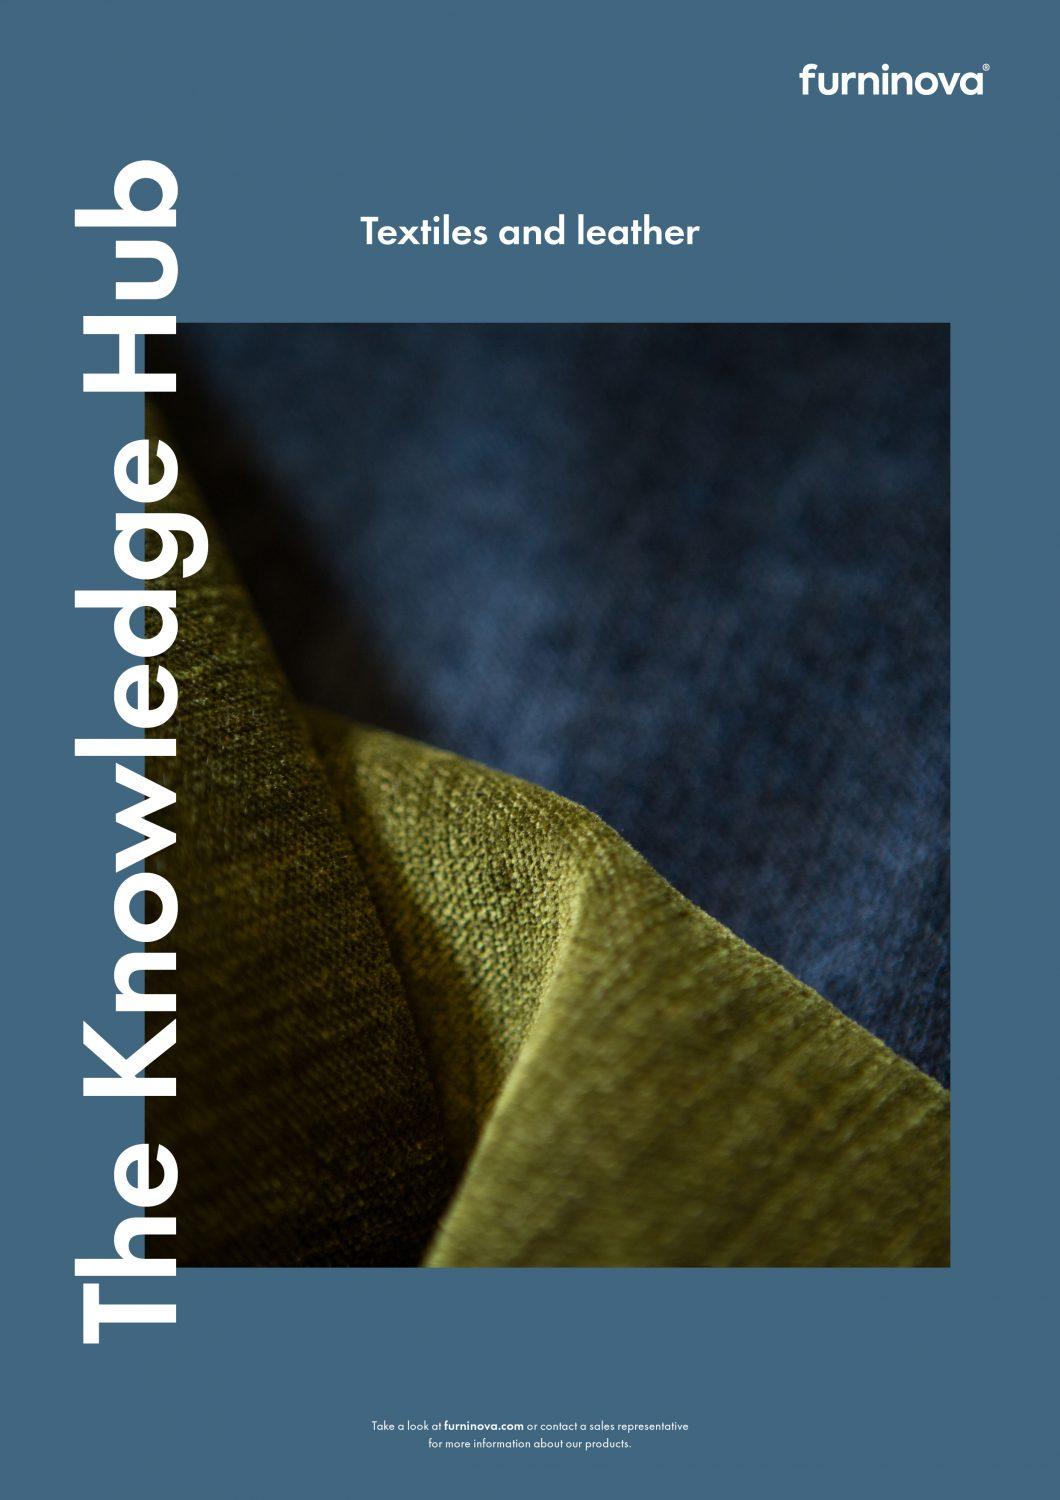 Textiles and leather